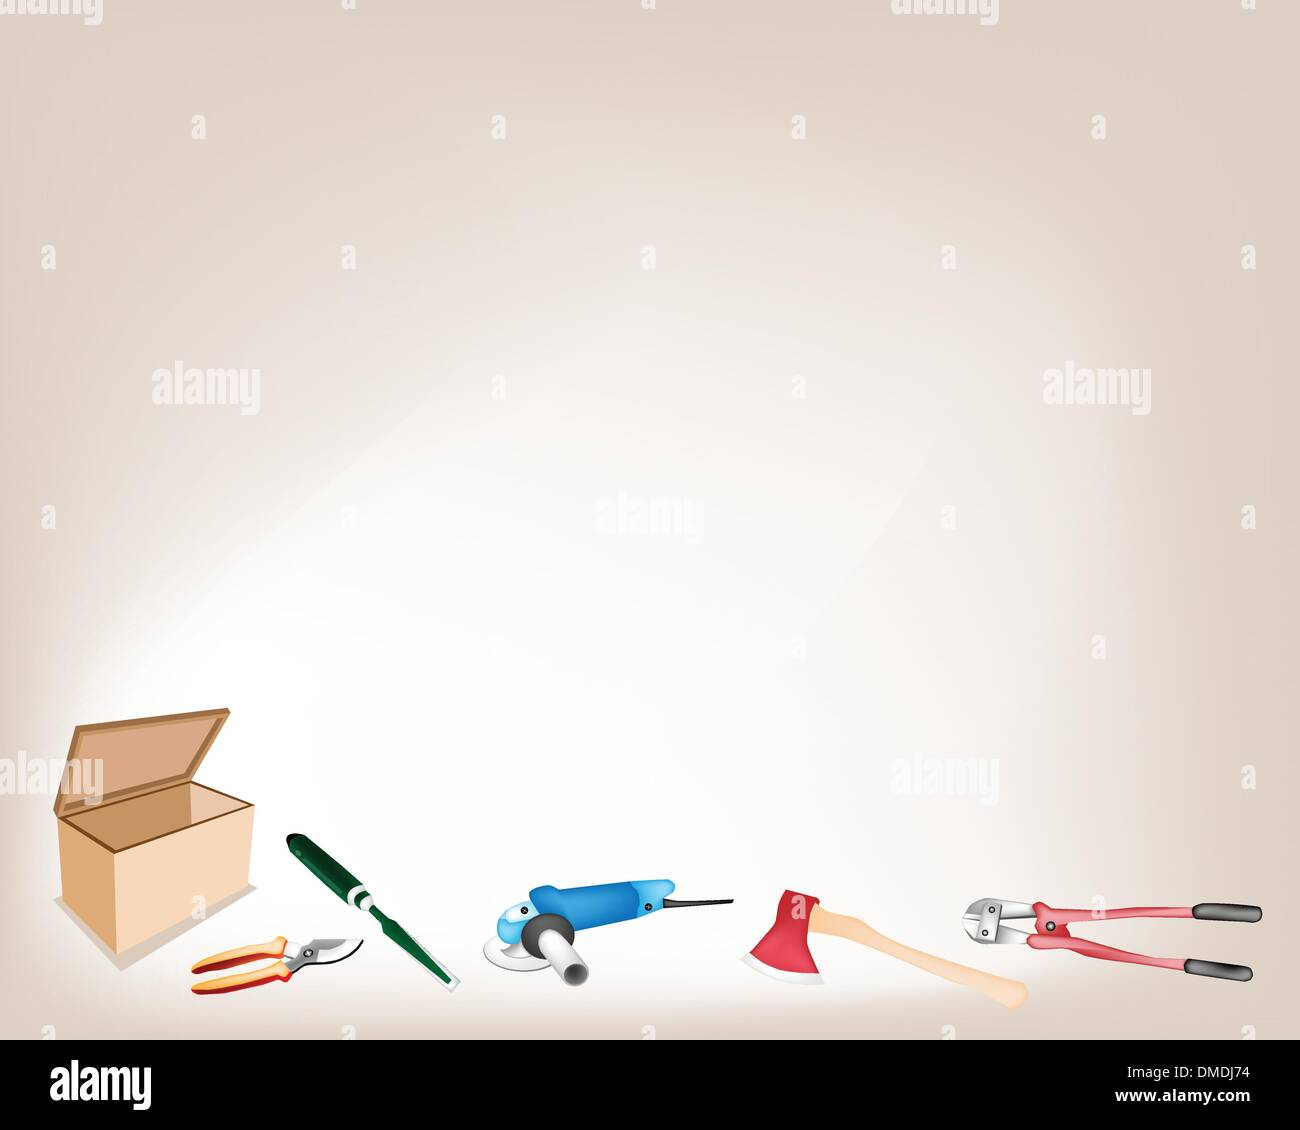 Collection of Various Craft Tools with Wooden Box - Stock Vector